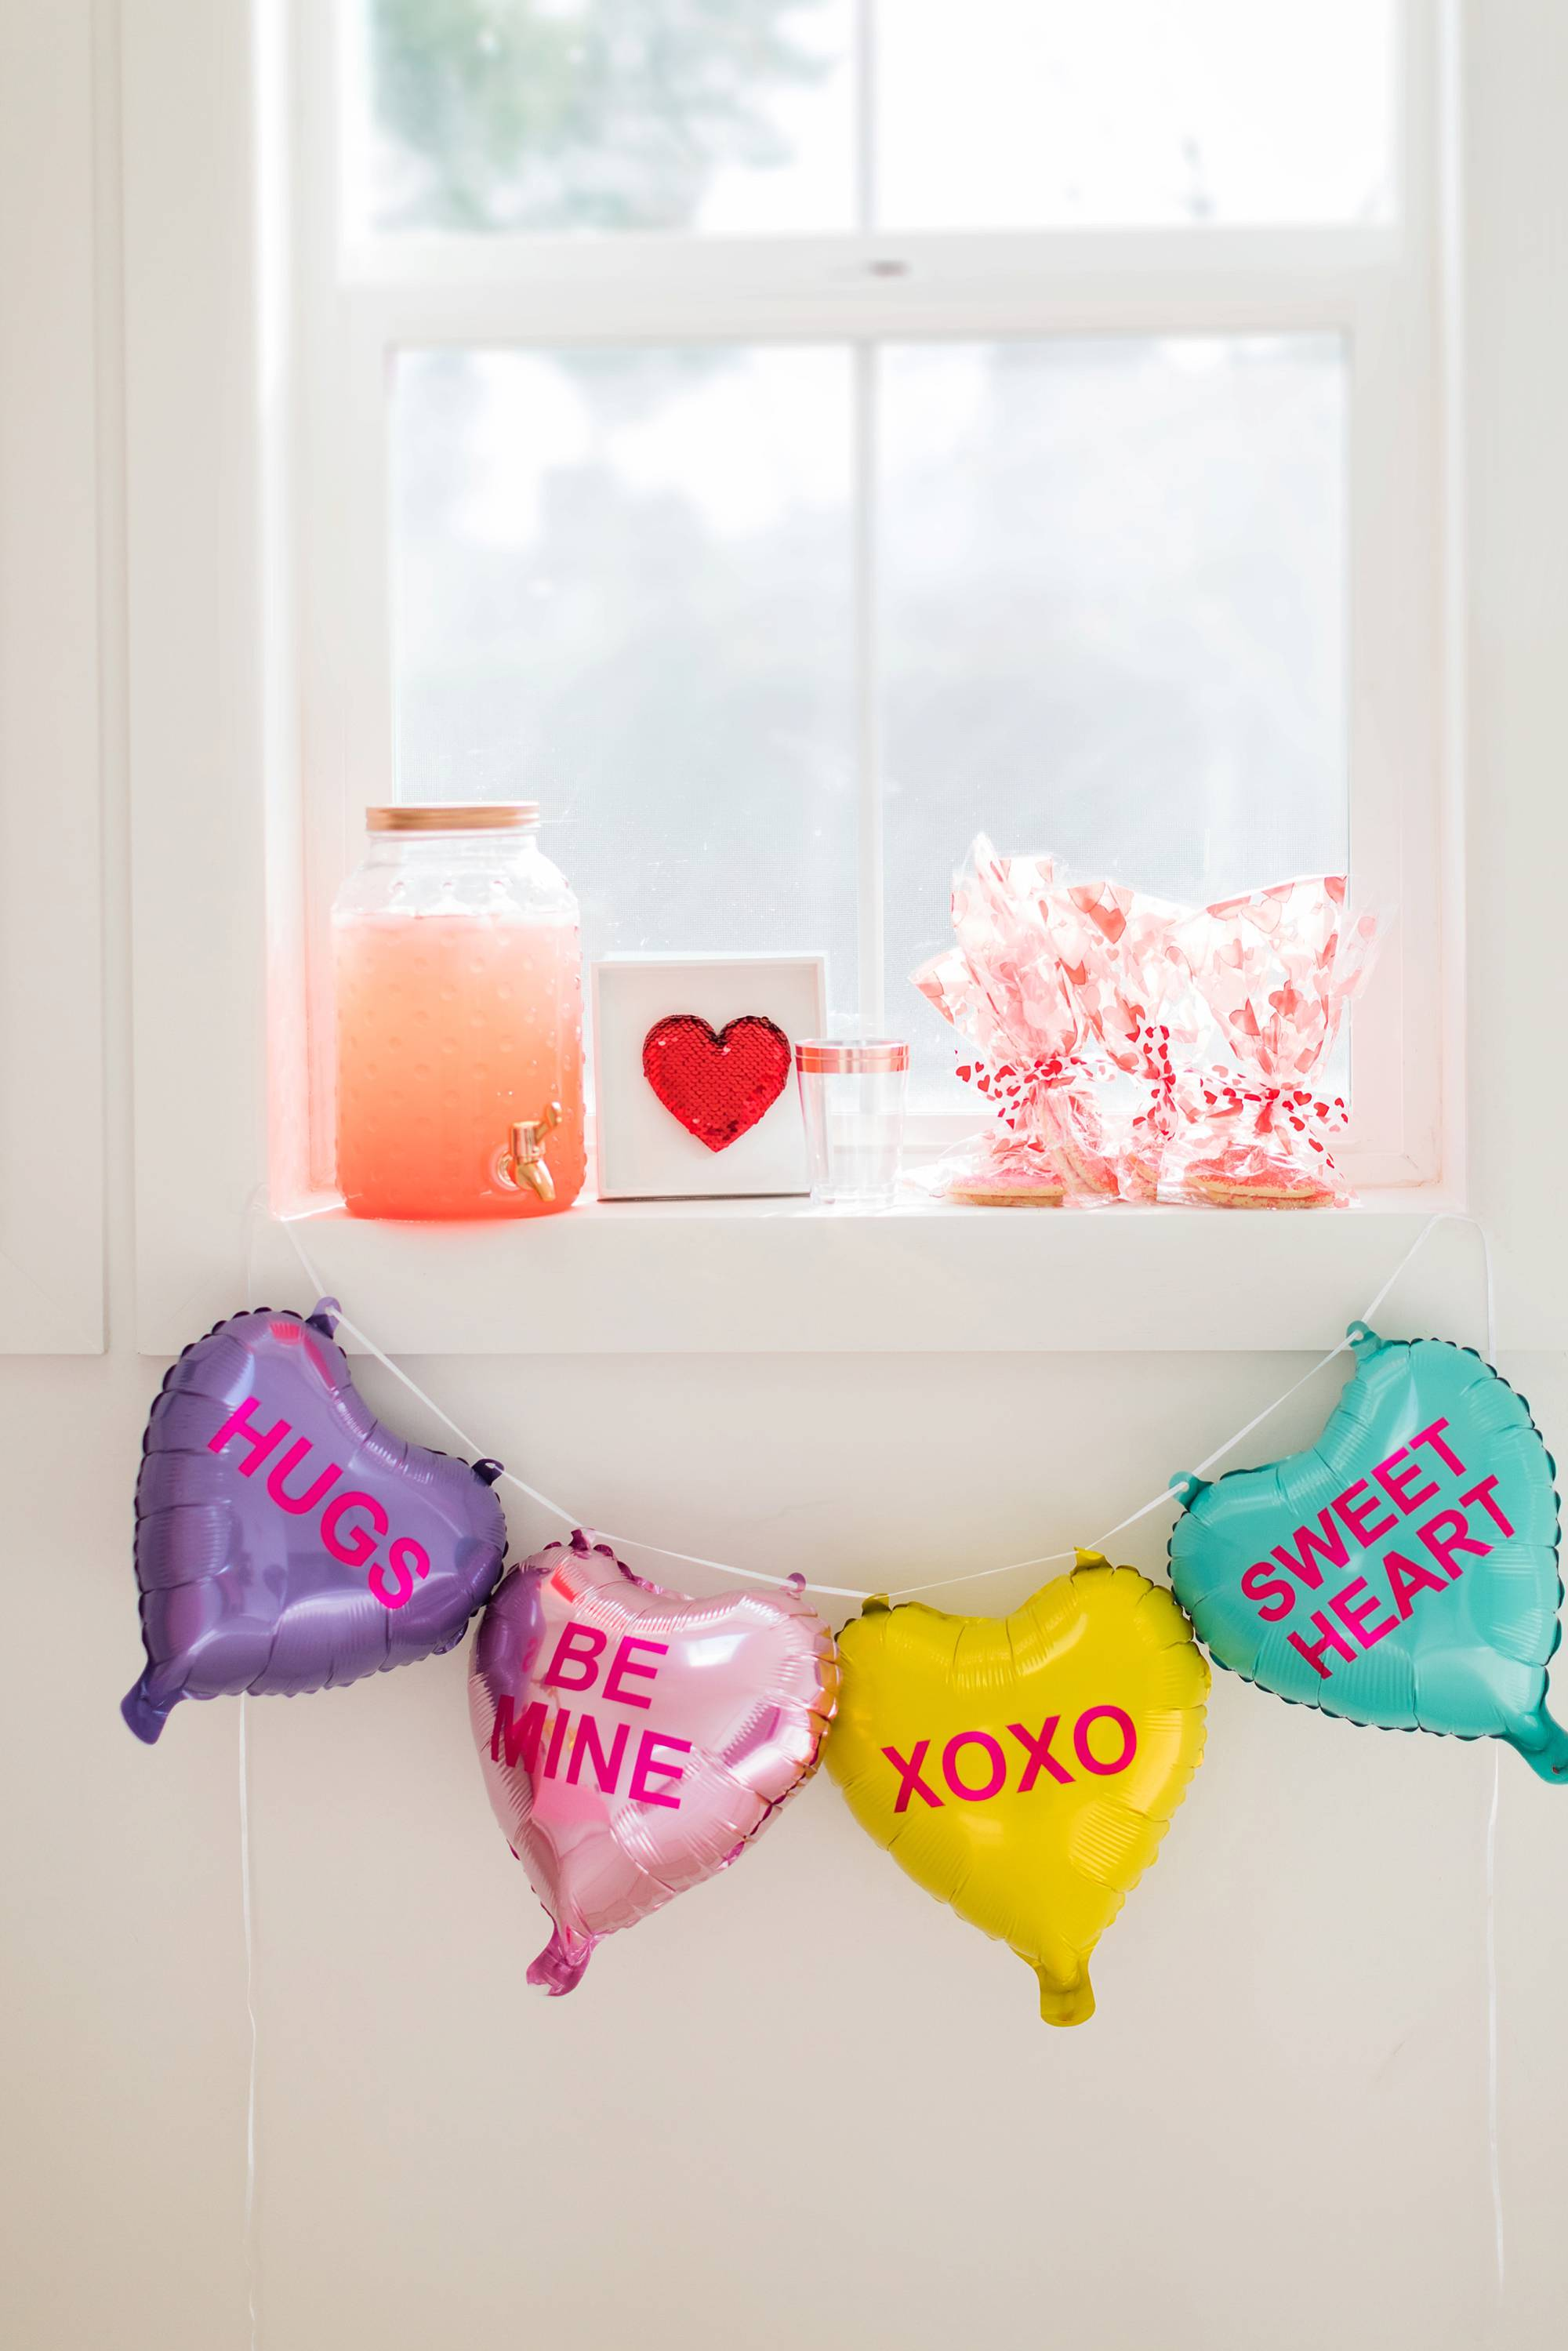 the drink station from the 99 cents store Valentine's Day galentine's day decor from the 99 cents only store - a party on a budget cute girly and fun! #valentinesday #galentinesday